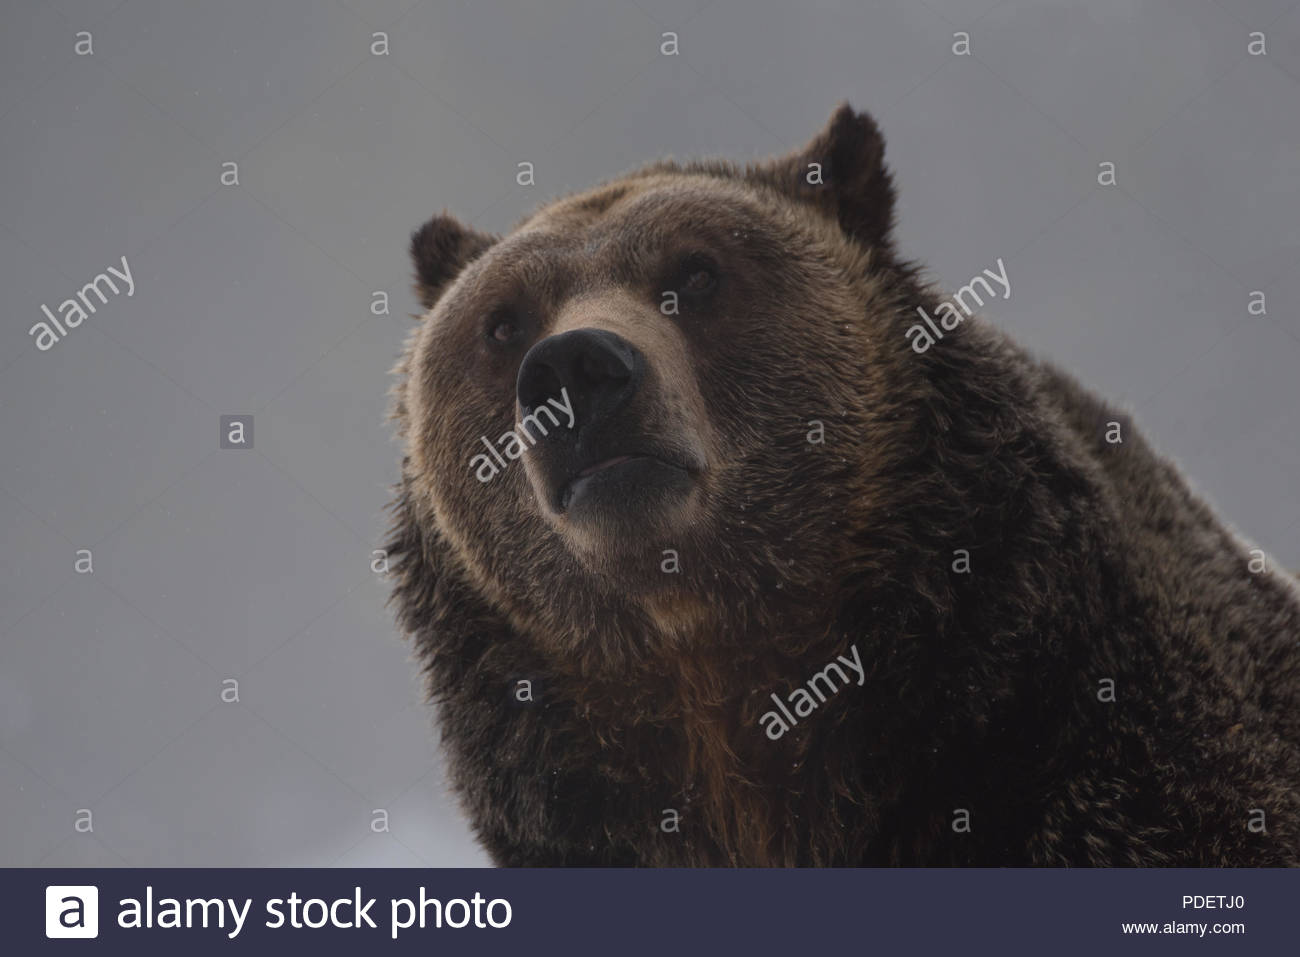 A portrait of an inquisitive Grizzly Bear - Stock Image